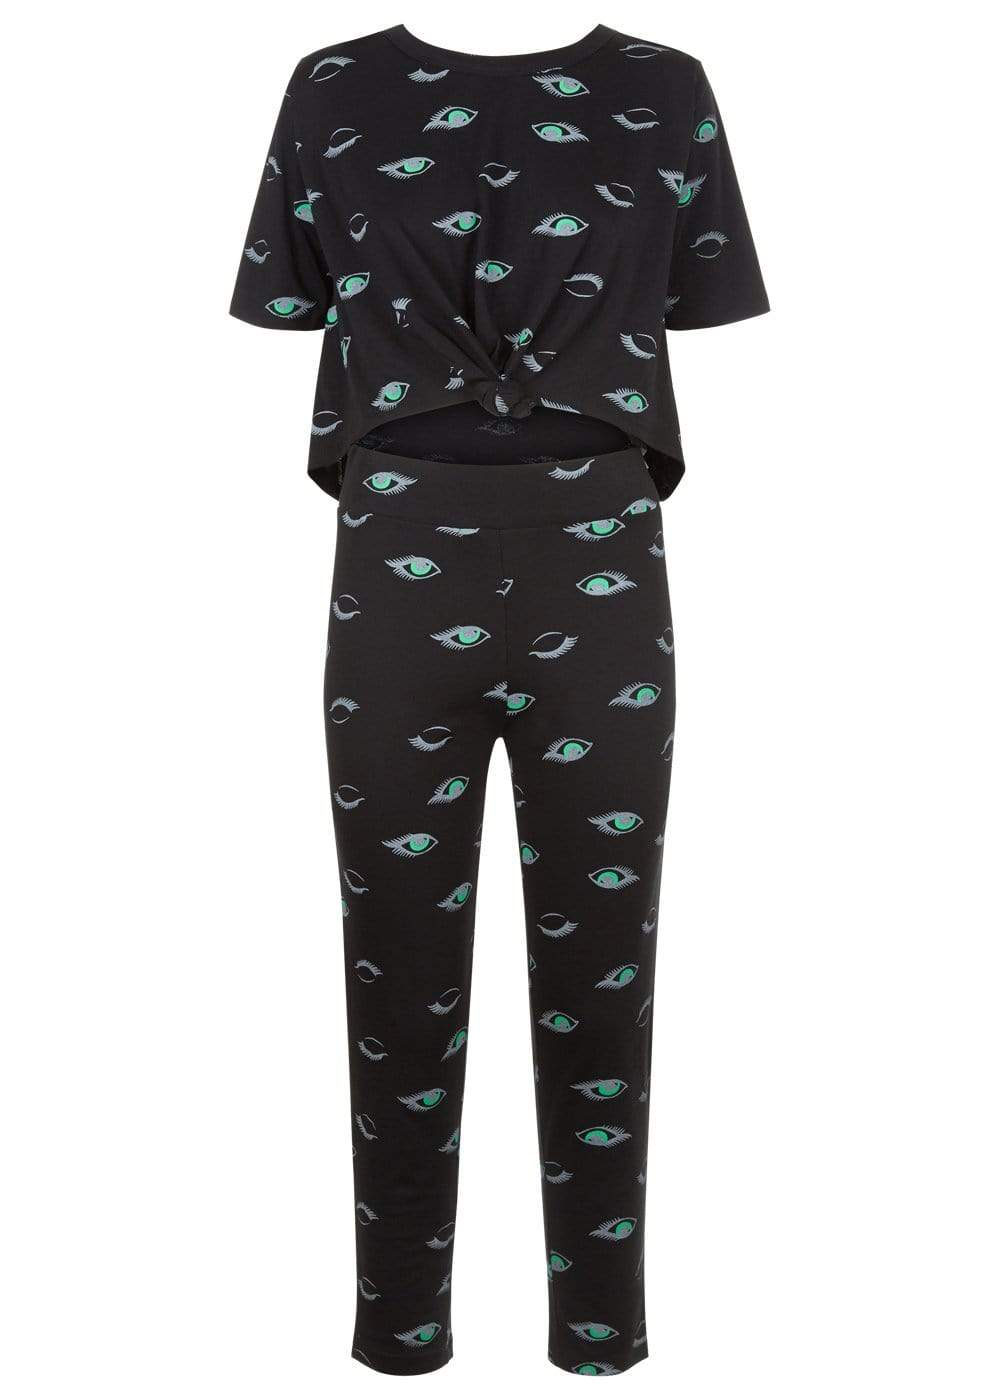 Teenzshop  Girls Black Teenzshop Eyes Print Pyjama Set